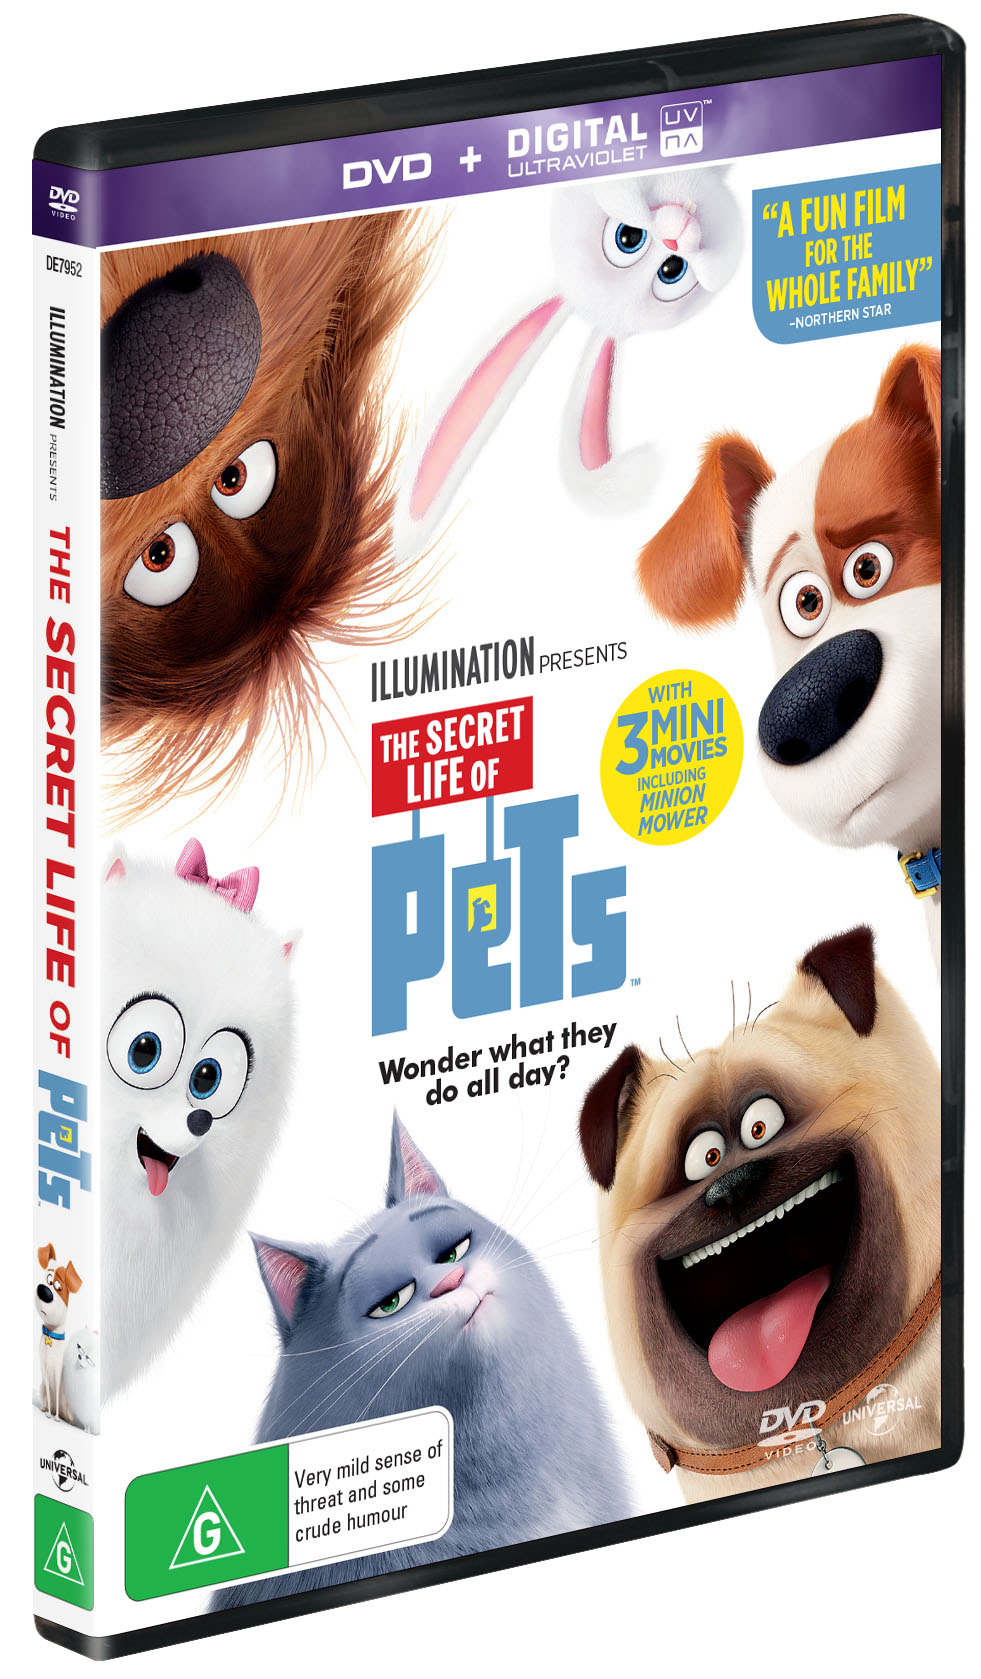 de7952_the-secret-life-of-pets_3d